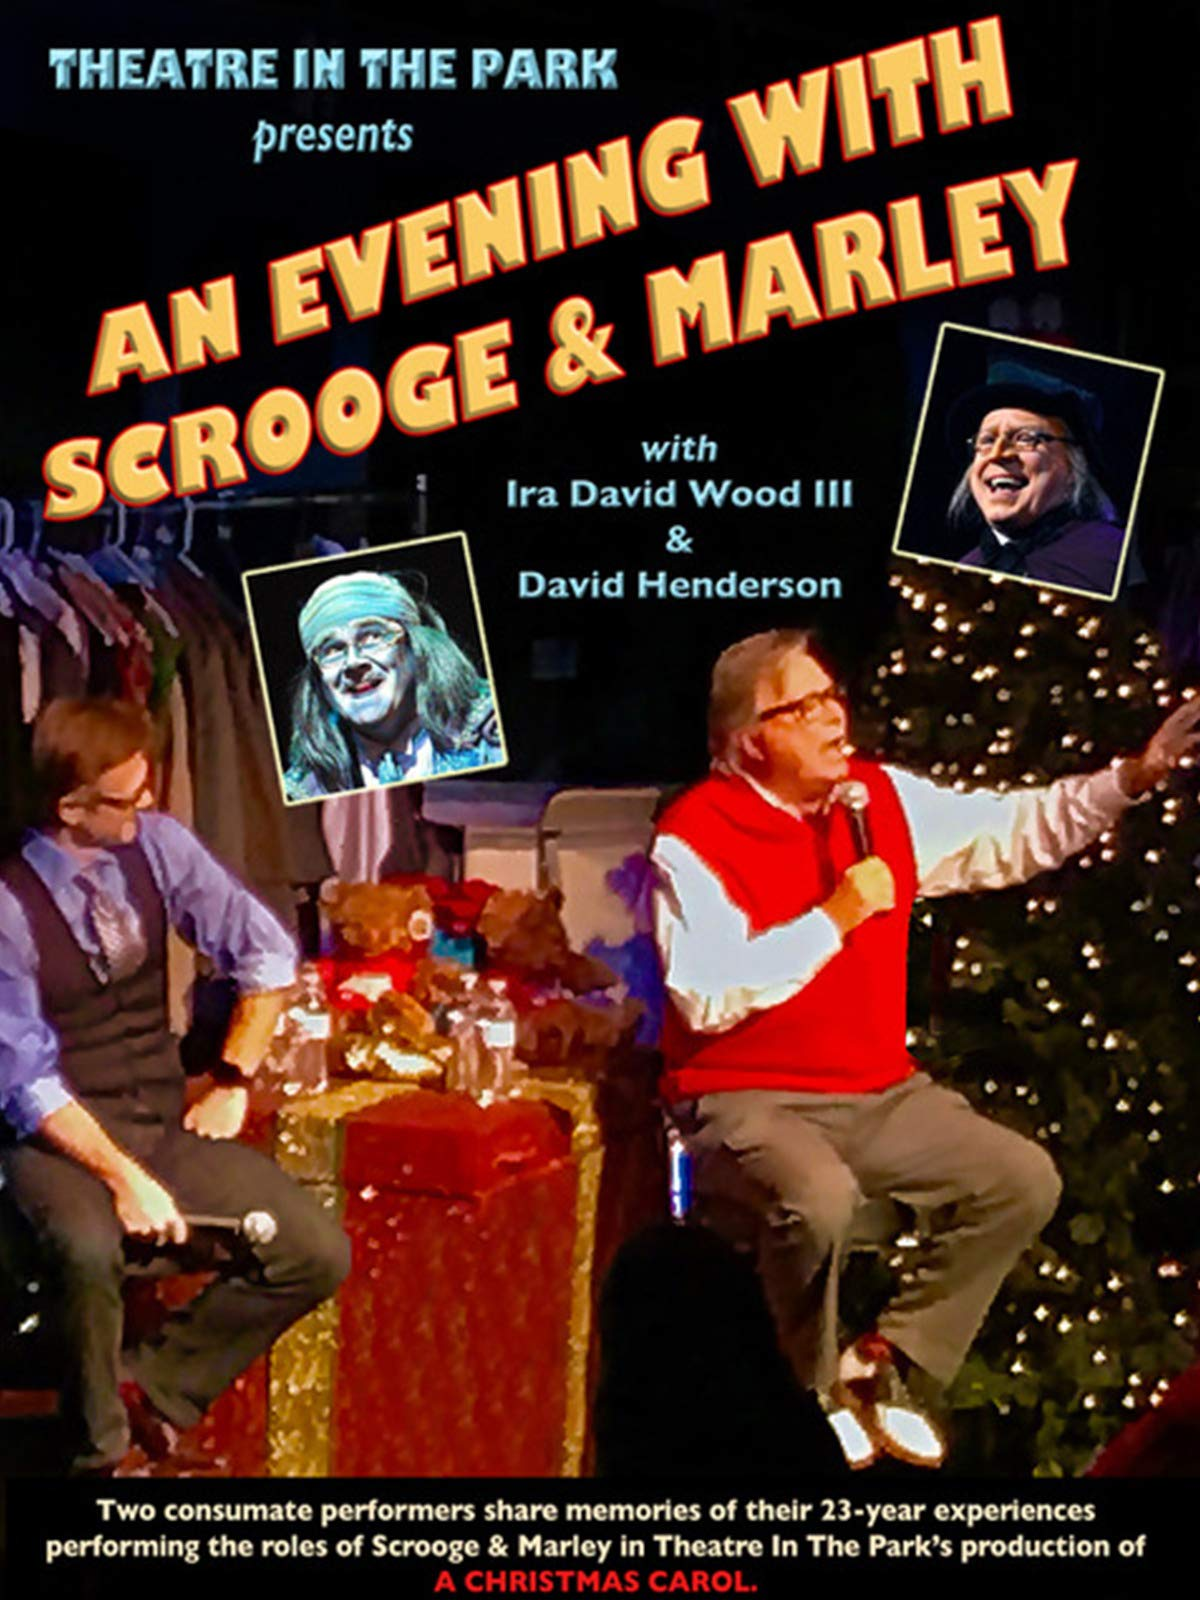 Ira David Wood Christmas Carol 2021 Watch An Evening With Scrooge And Marley Prime Video